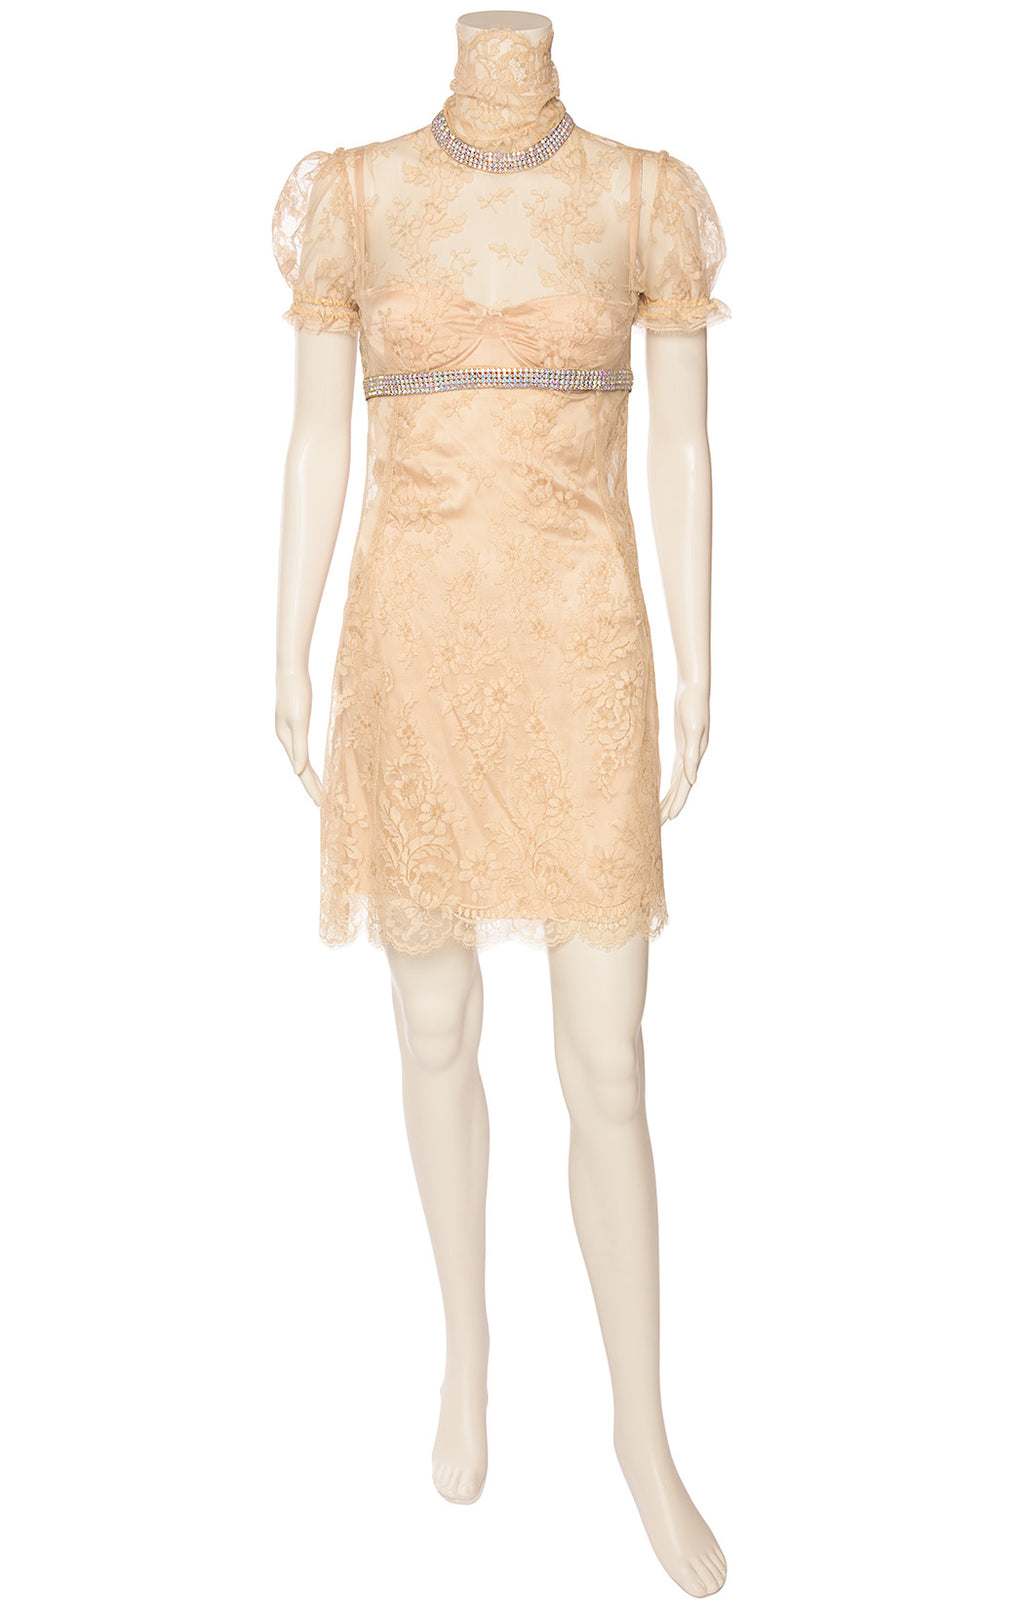 Front view of DOLCE & GABBANA Dress Size: No size tags fits like small